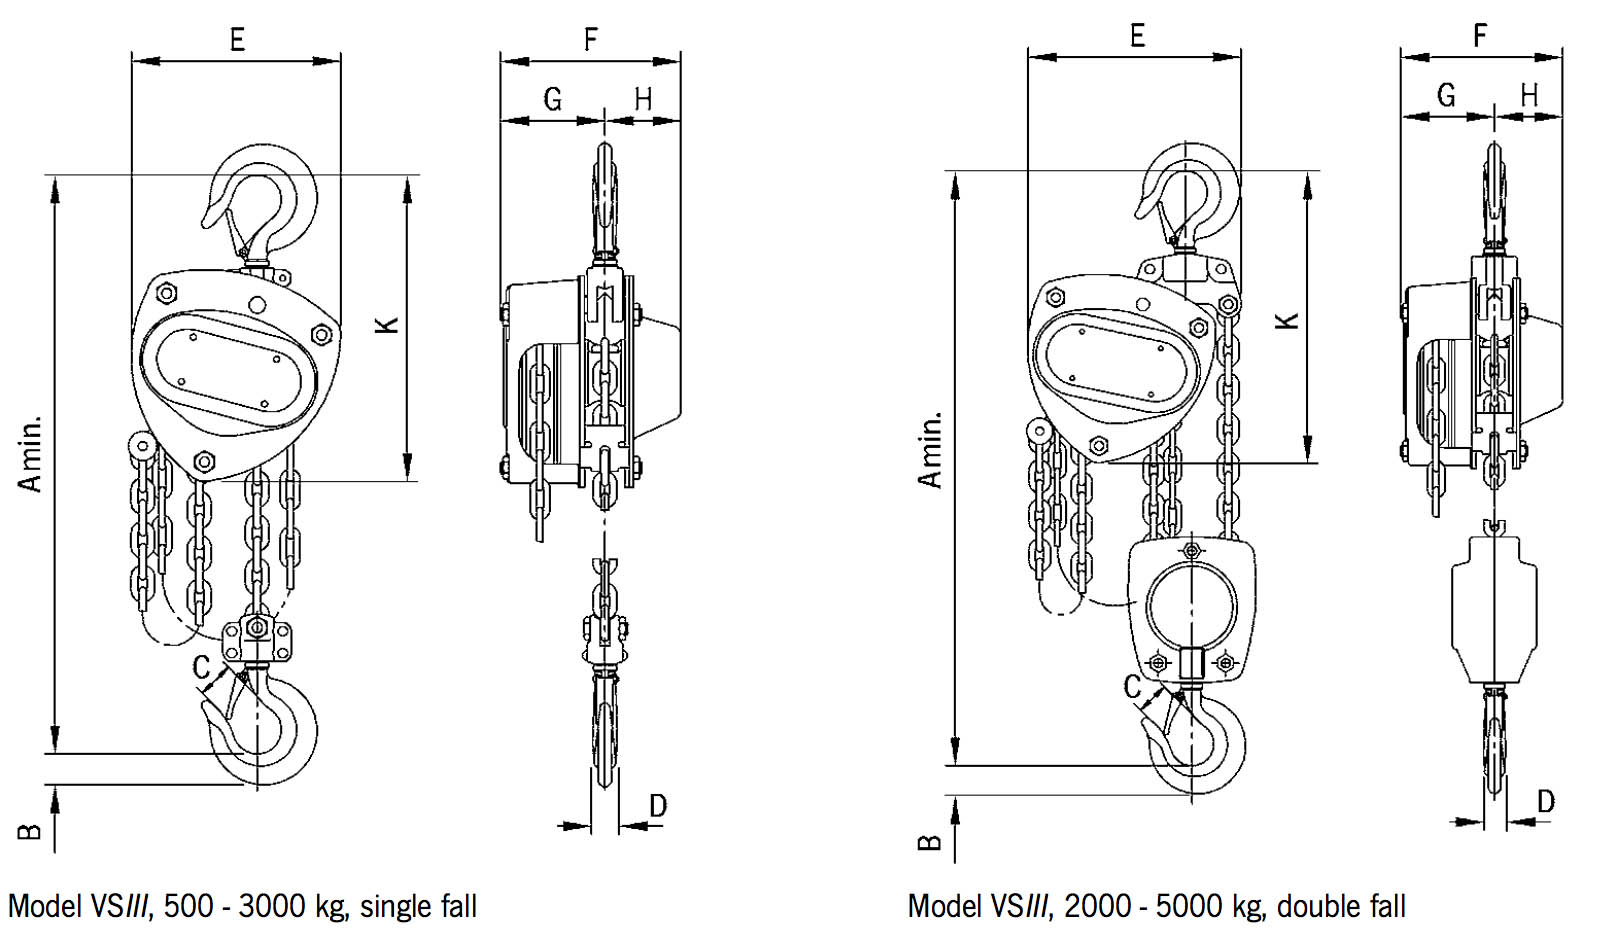 Engine Hoist Harbor Freight Wiring Diagram And Furthermore Warn Winch 20180405011432 Chain